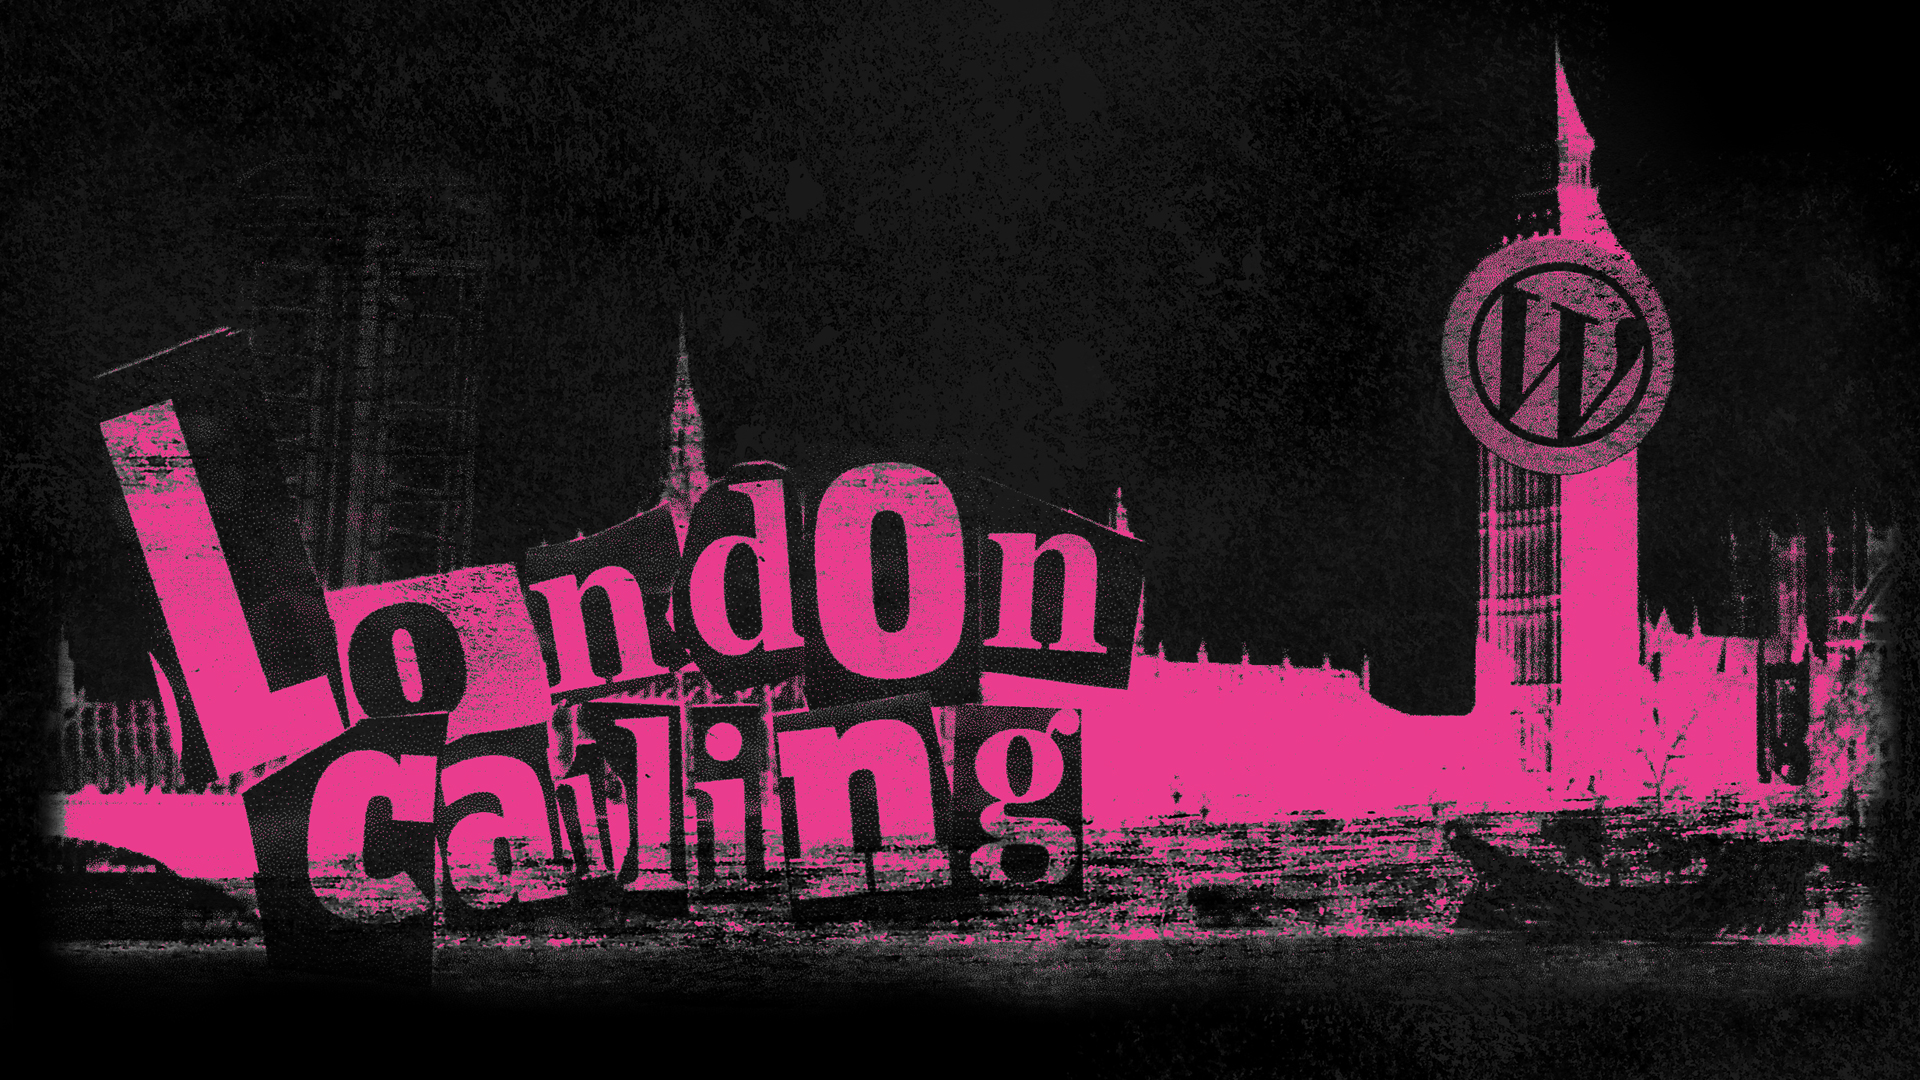 All New Hd Wallpaper Download Wordcamp London 20th 22nd March 2015